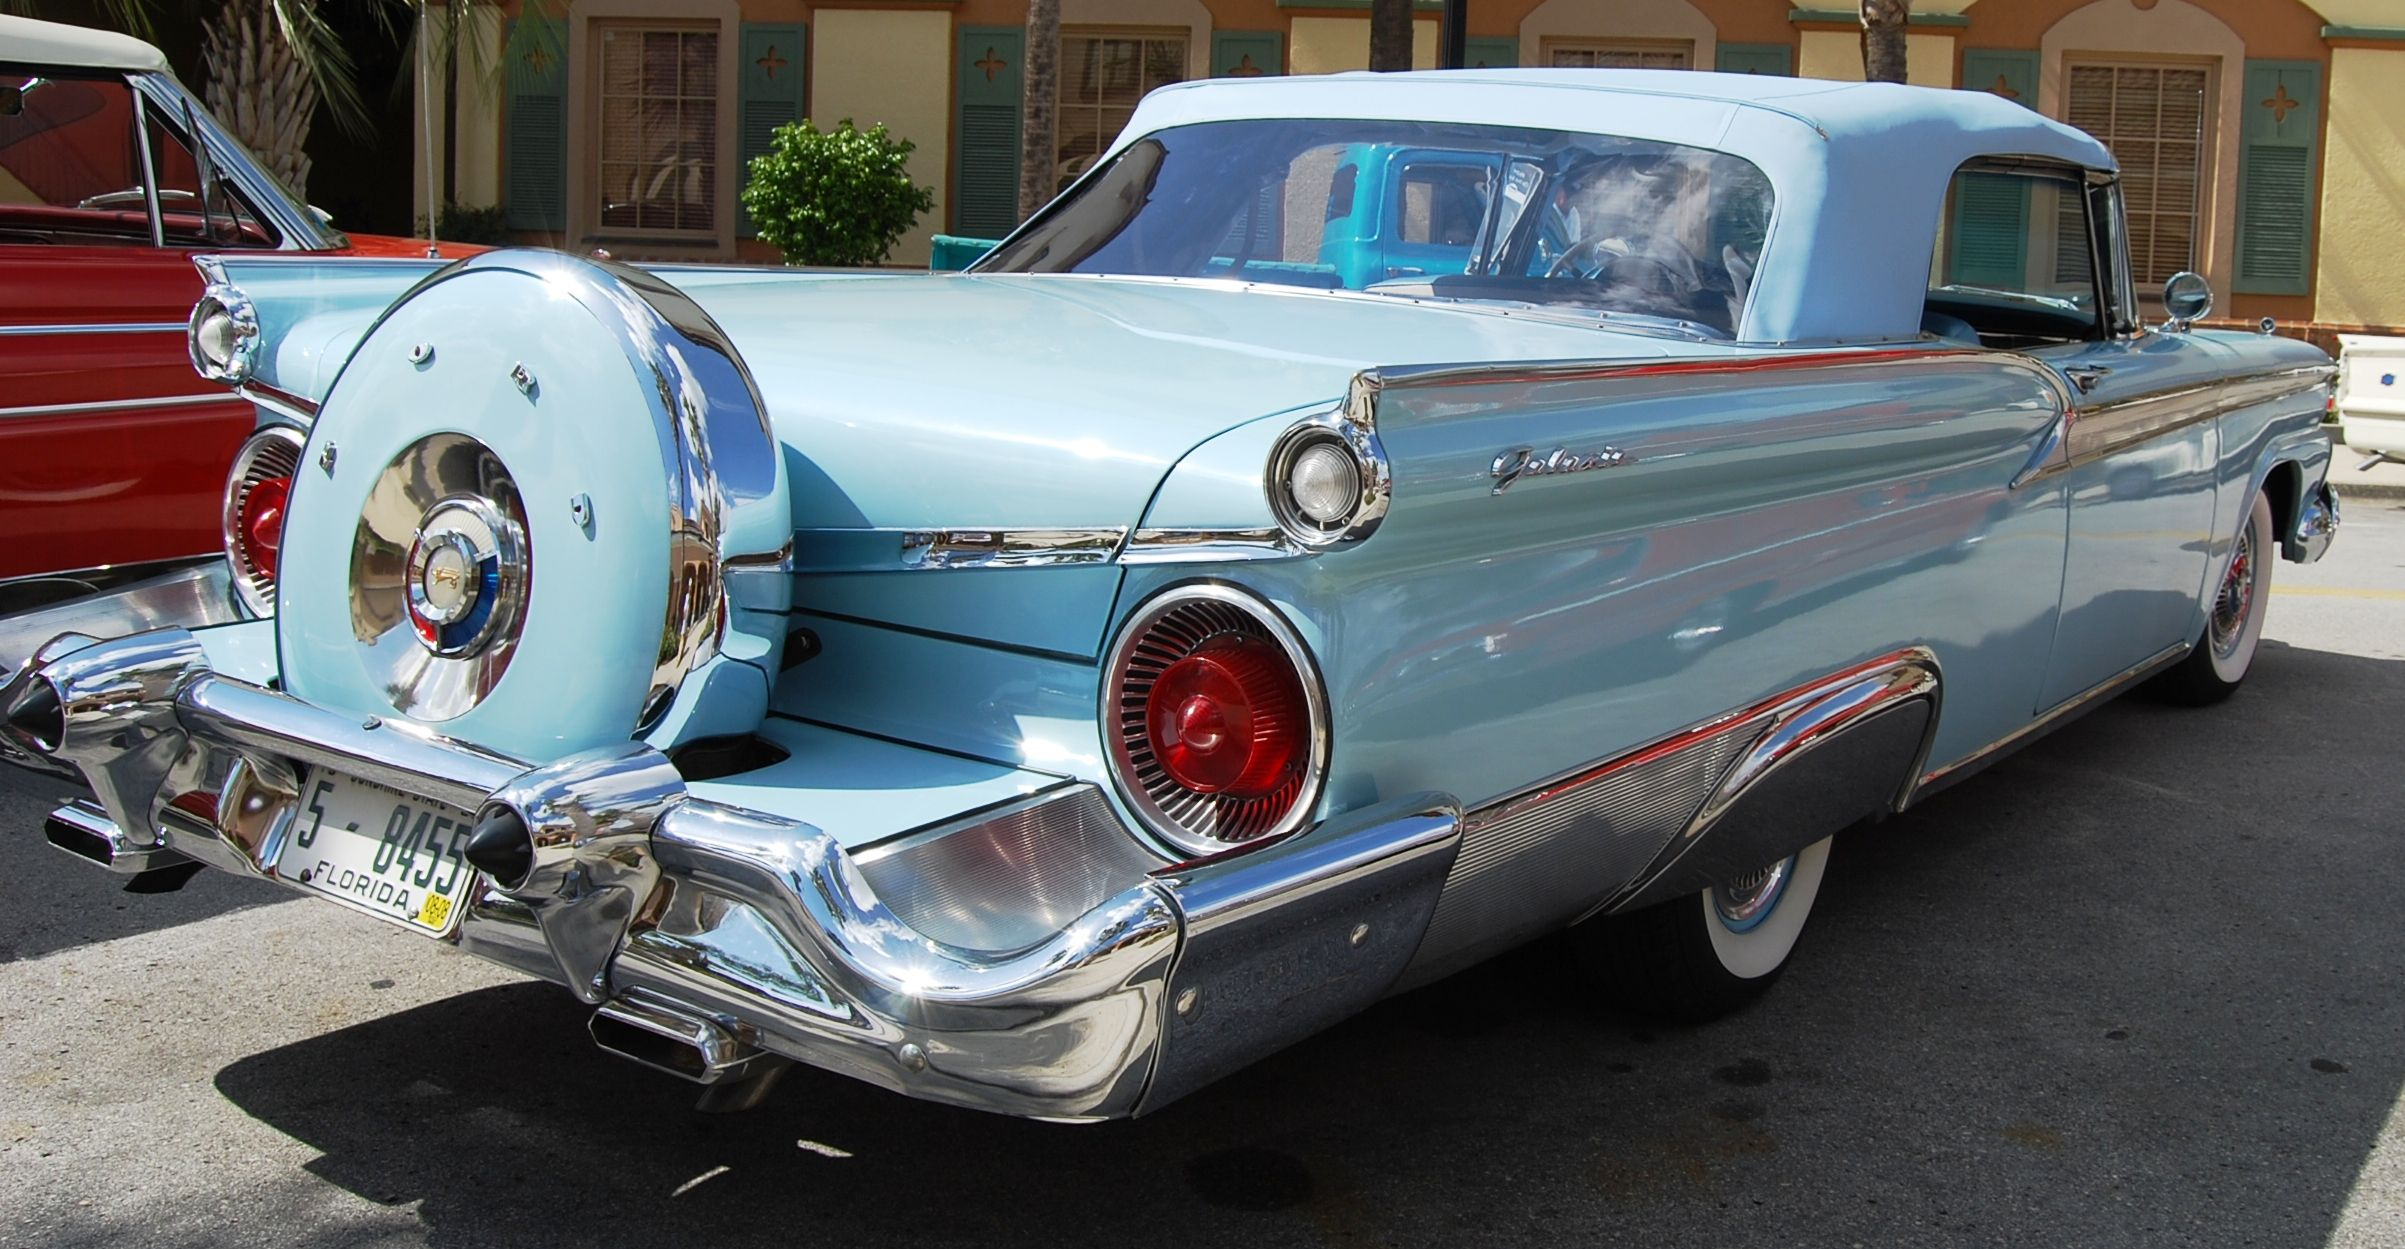 1959 cars 1959 ford fairlane convertible this is my car too only in white